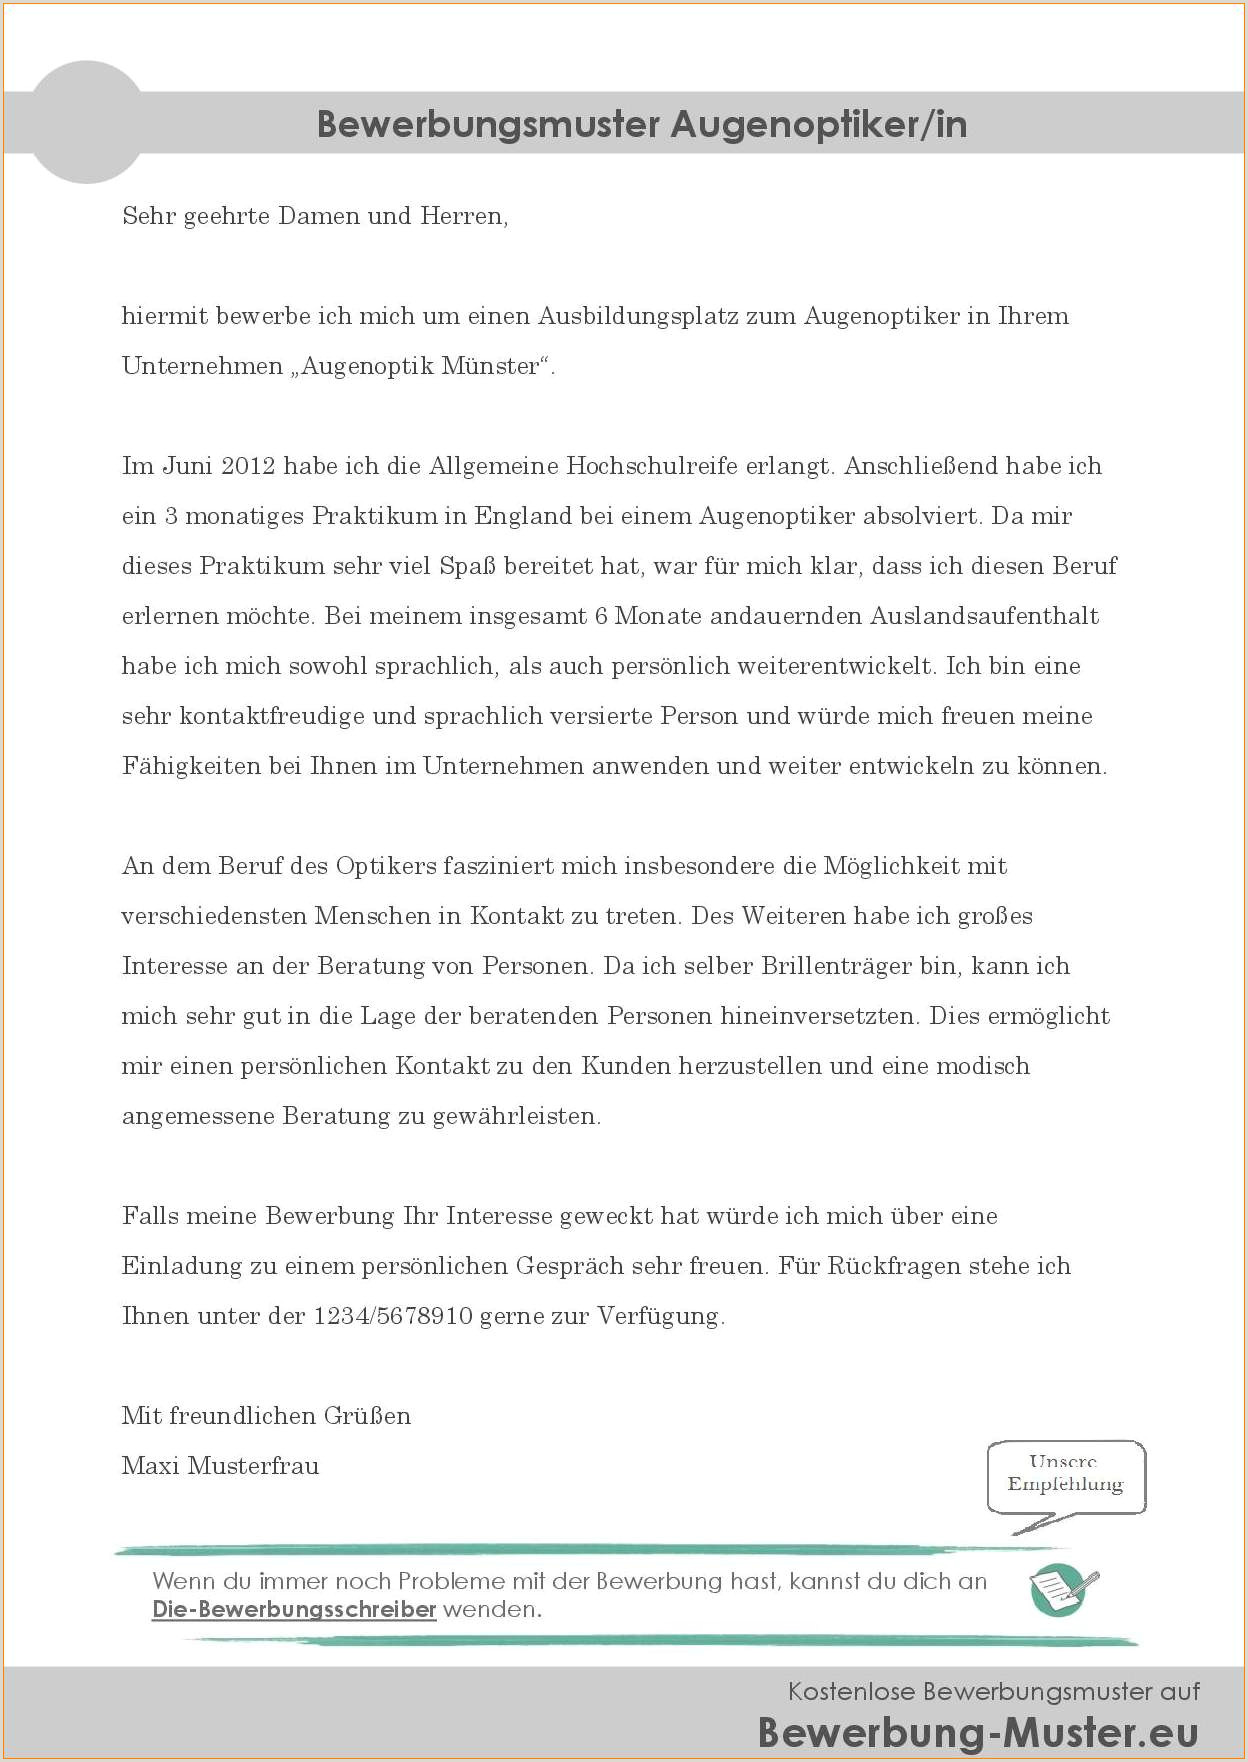 Lebenslauf Muster Optiker Praktikum Brief 2019 01 15t22 21